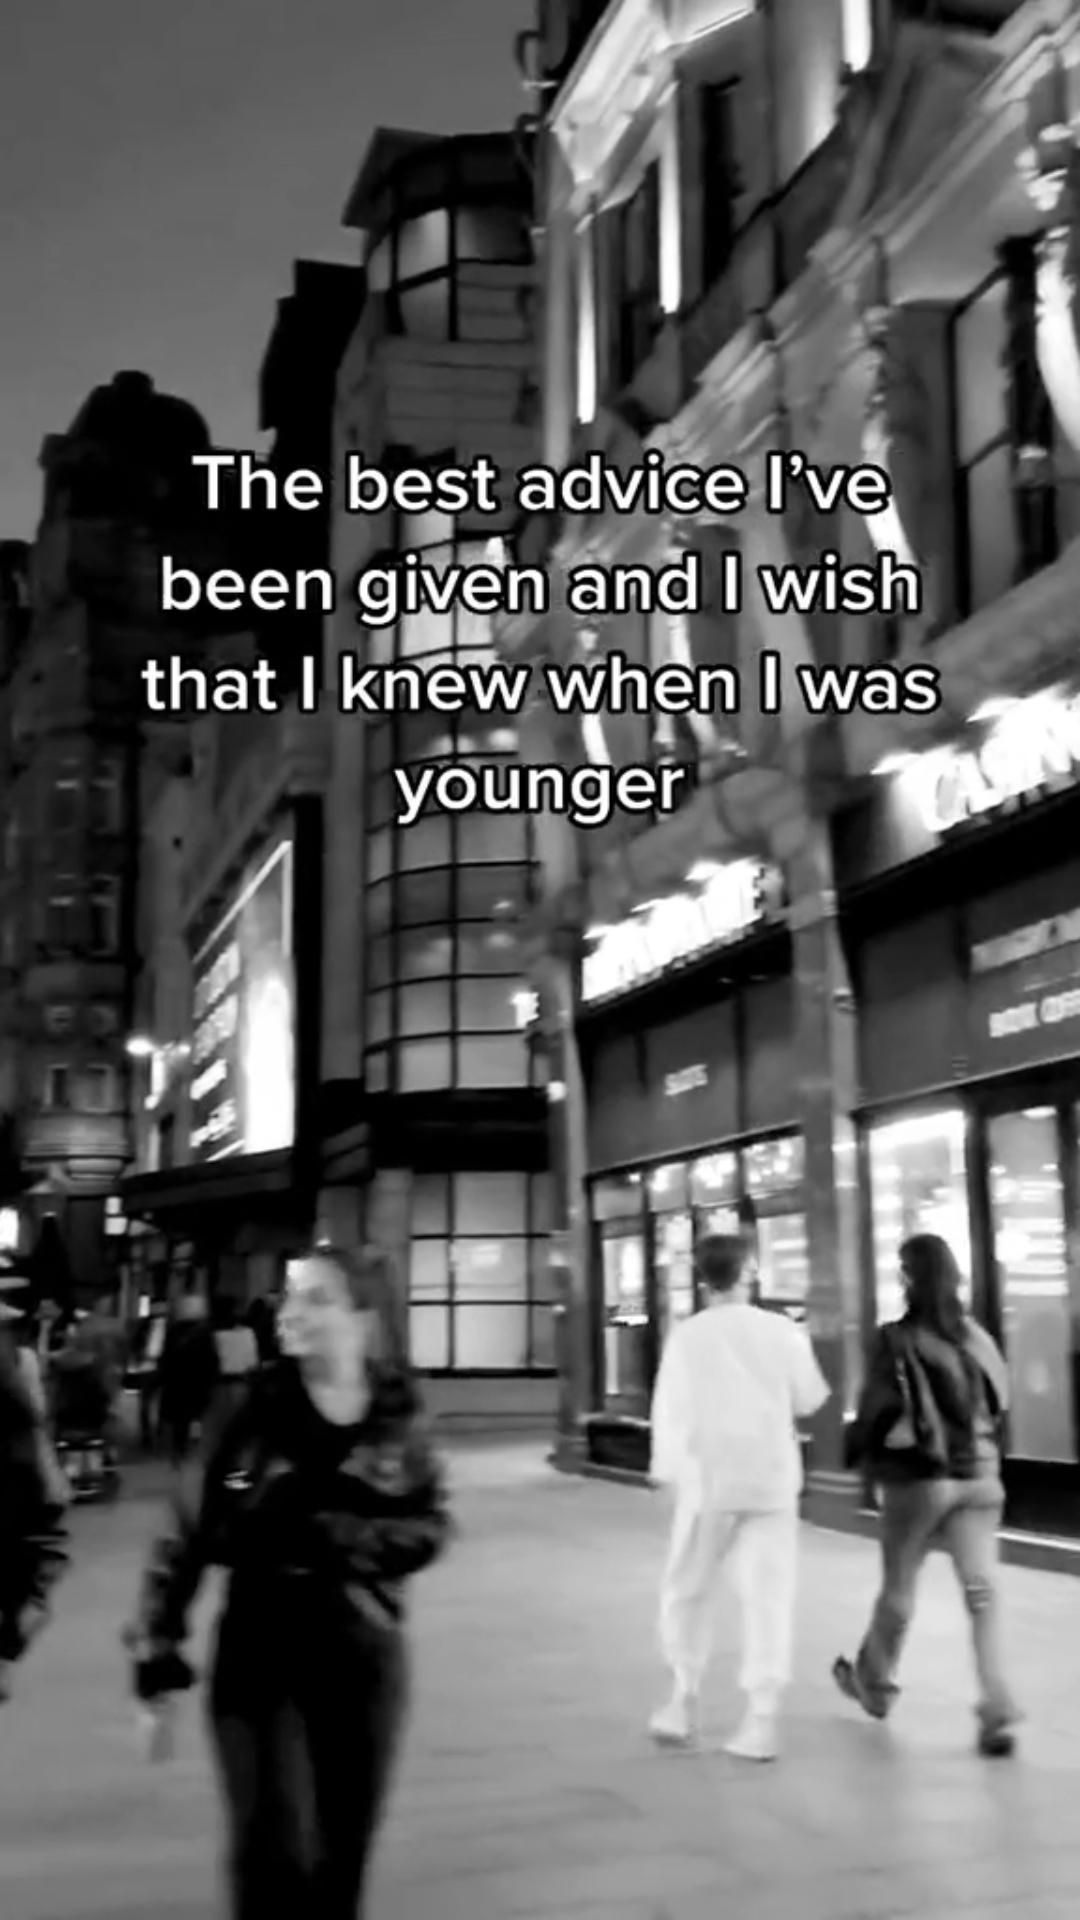 The Best advice for young people